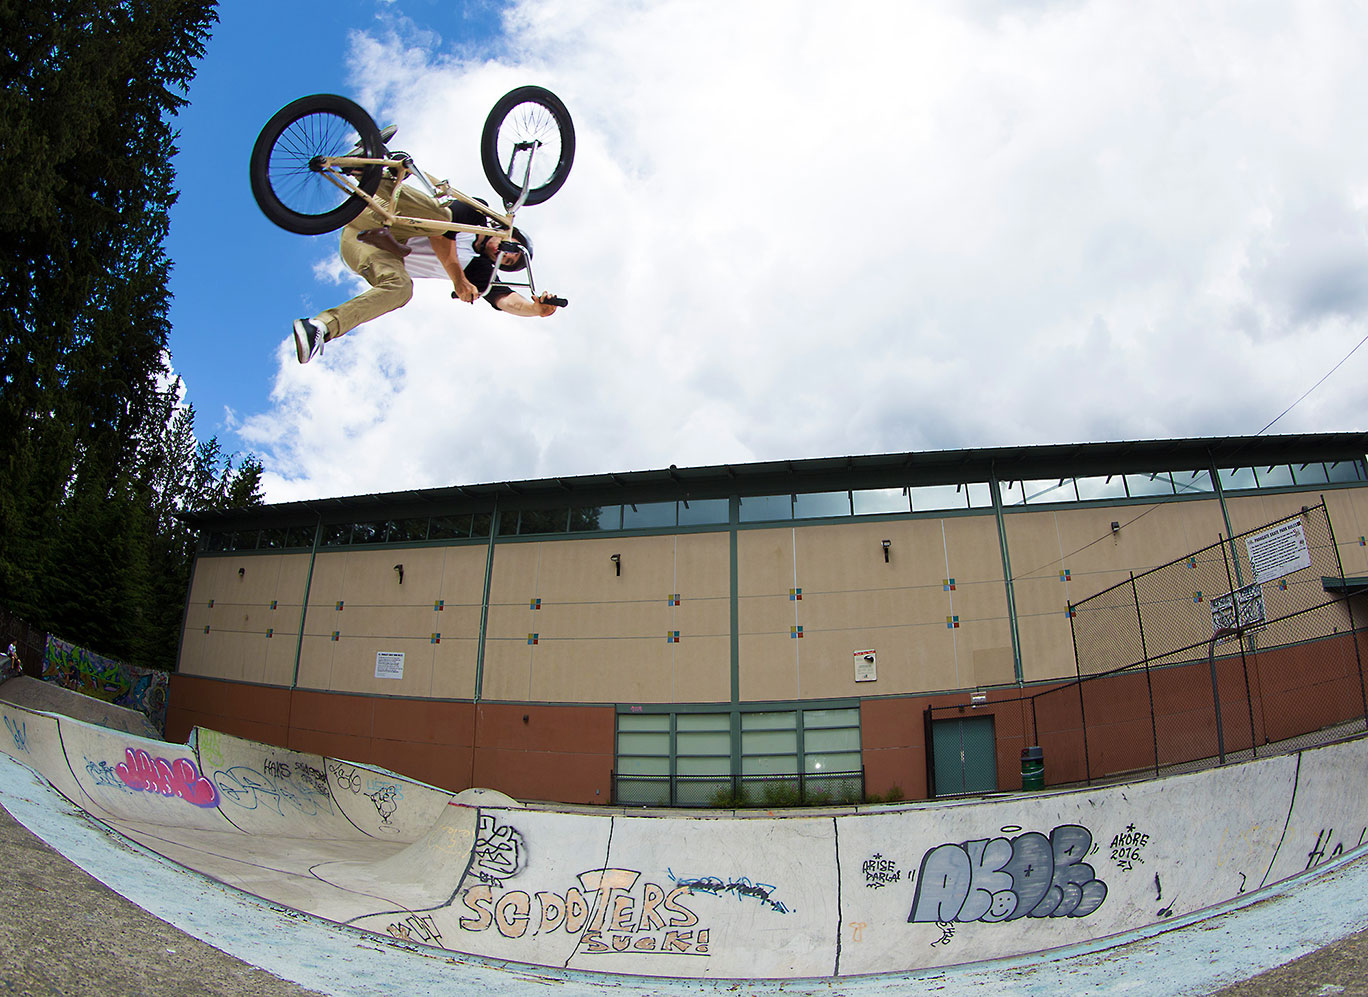 corey_walsh_parkagte-1footer